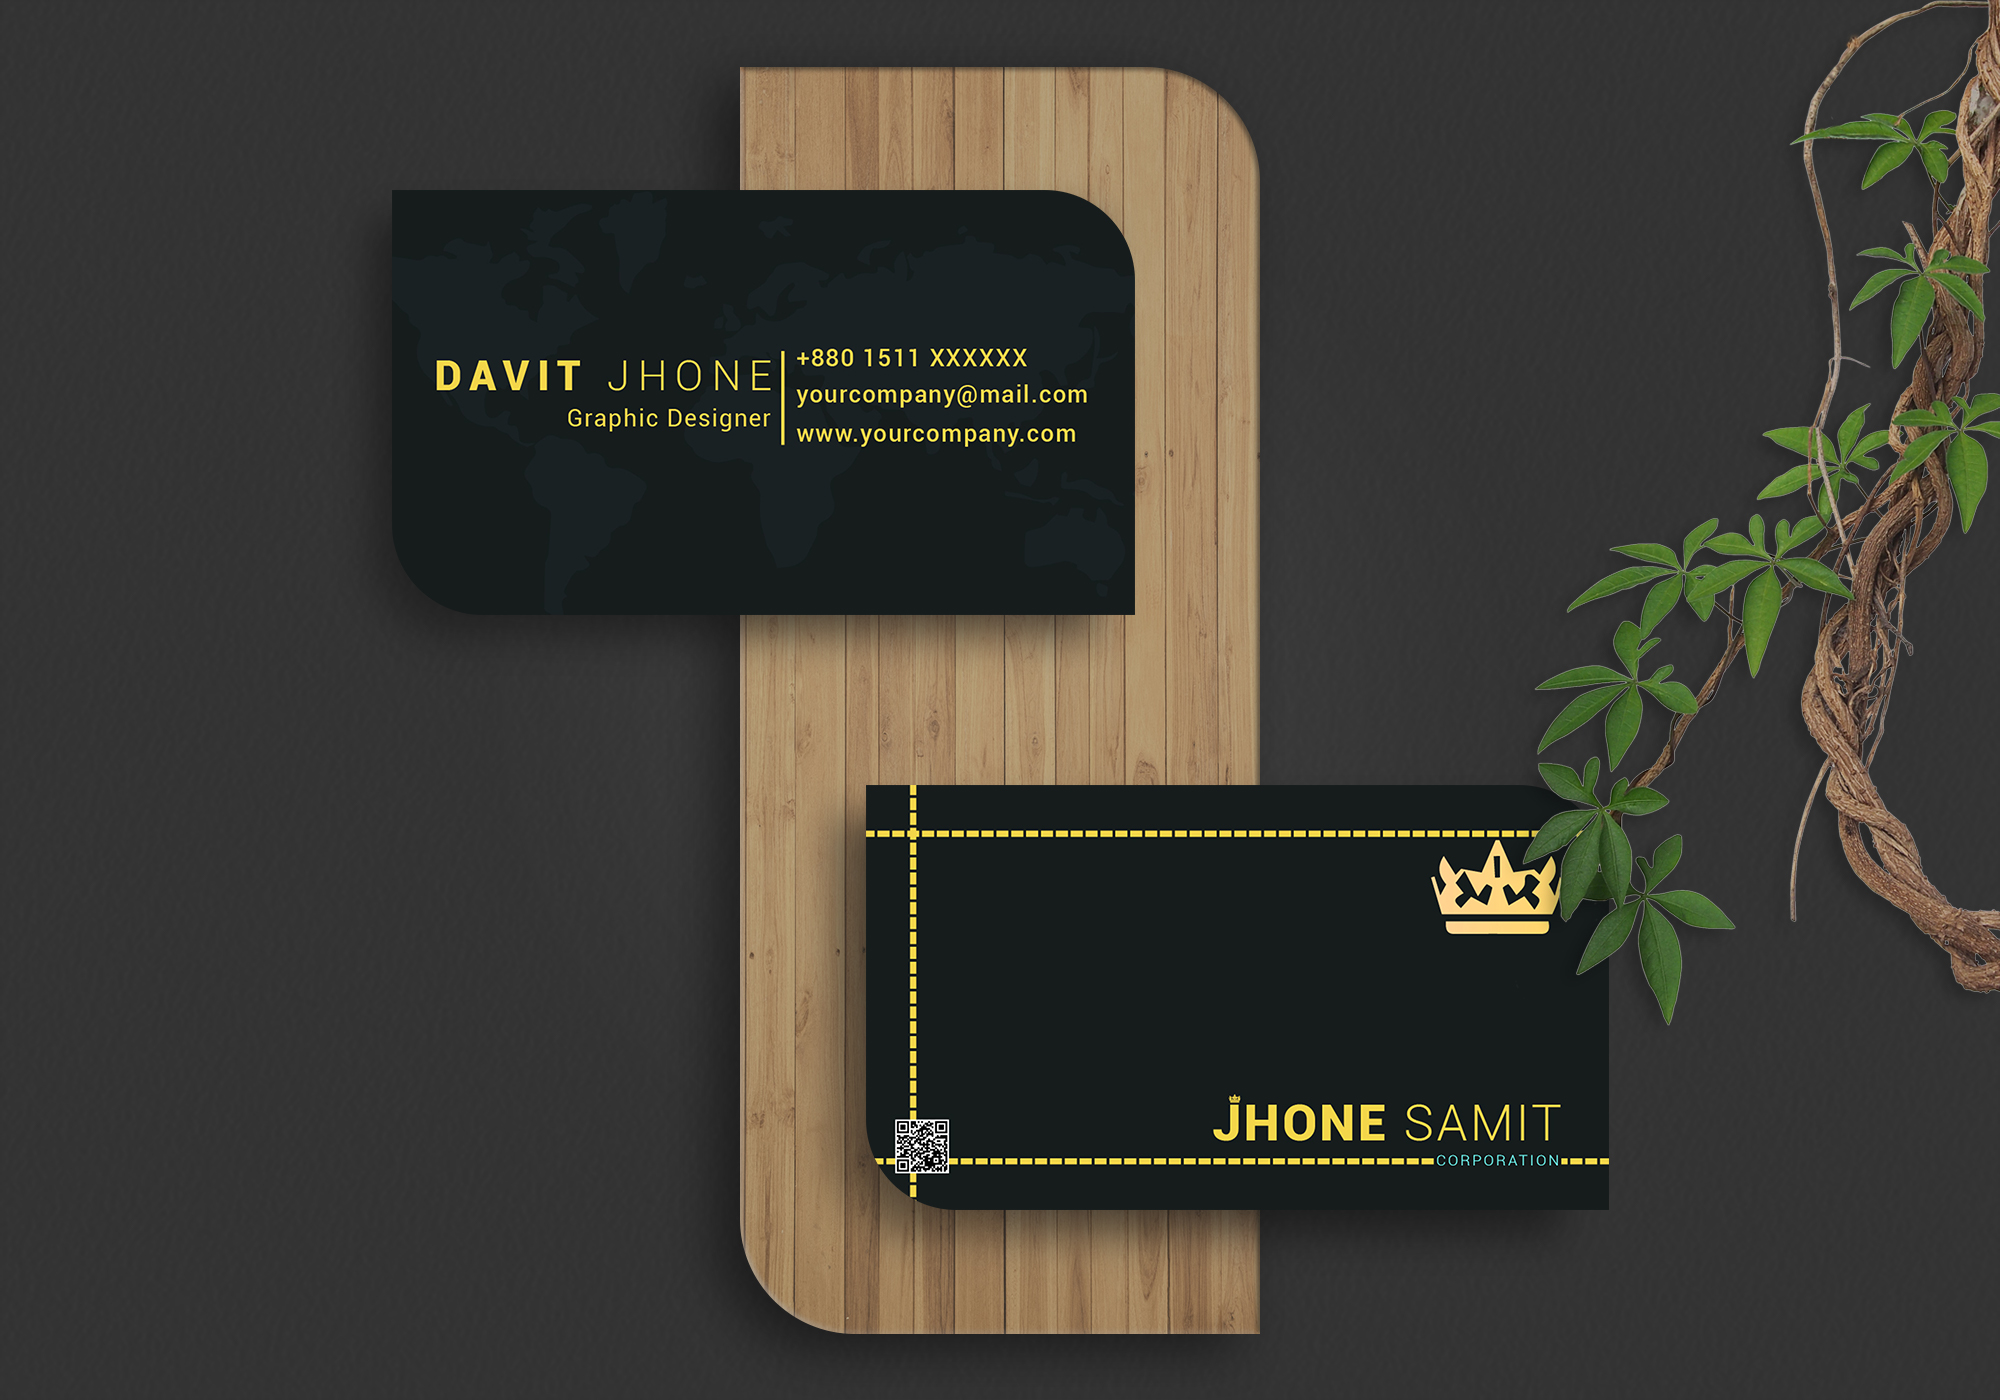 I will design luxury and unique business card